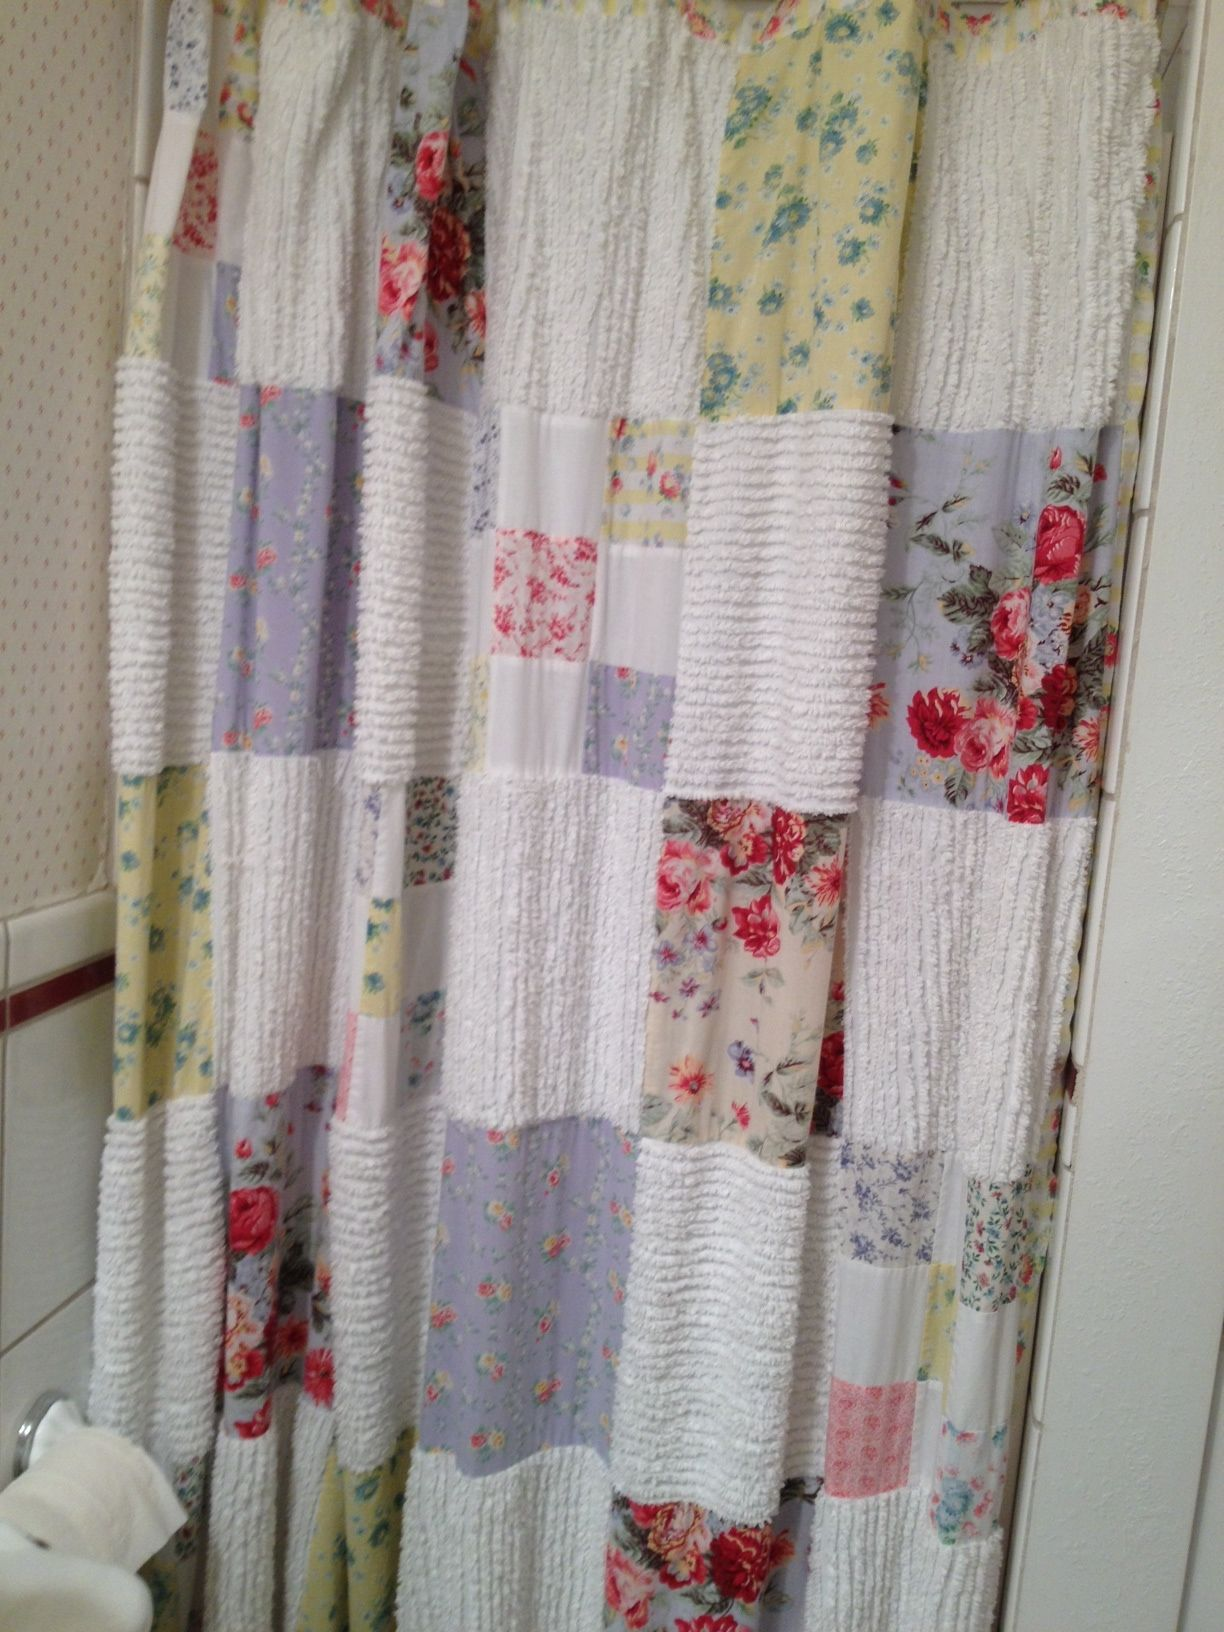 Superior Patchwork Shower Curtain. Do In Cotton (from Sheets And Pillowcases, Etc.)